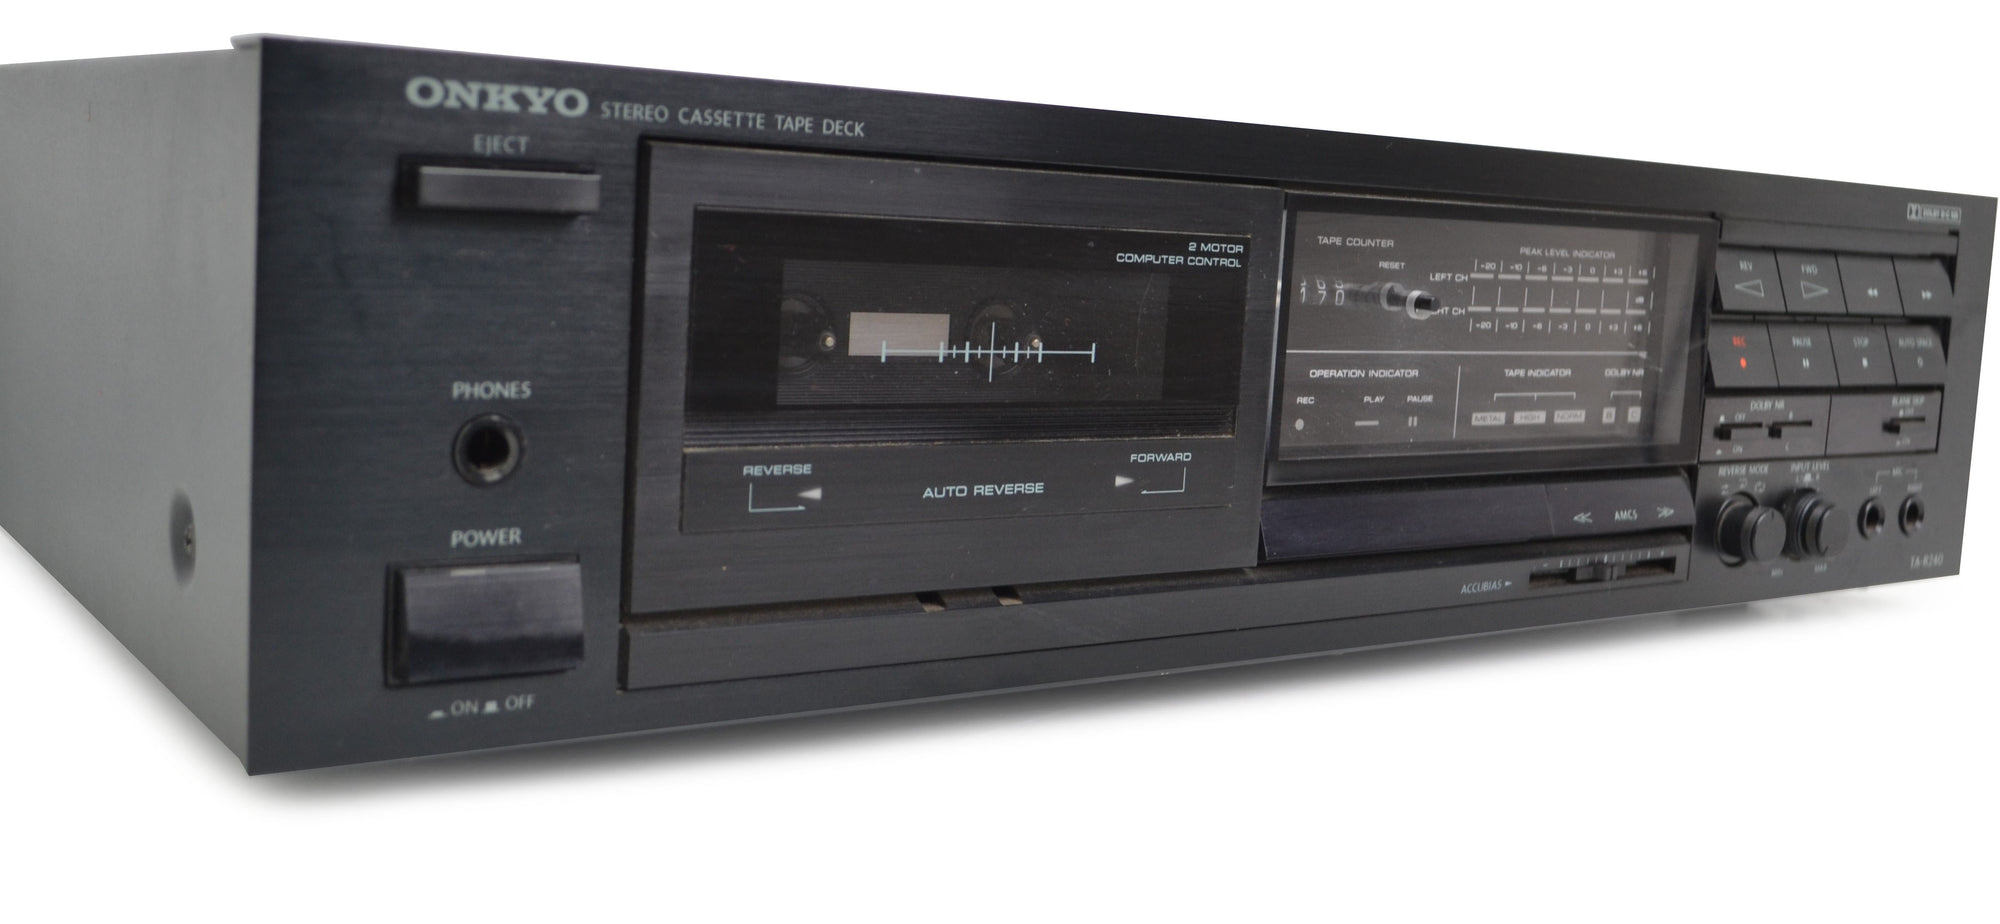 Onkyo Cassette deck single with counter and auto reverse